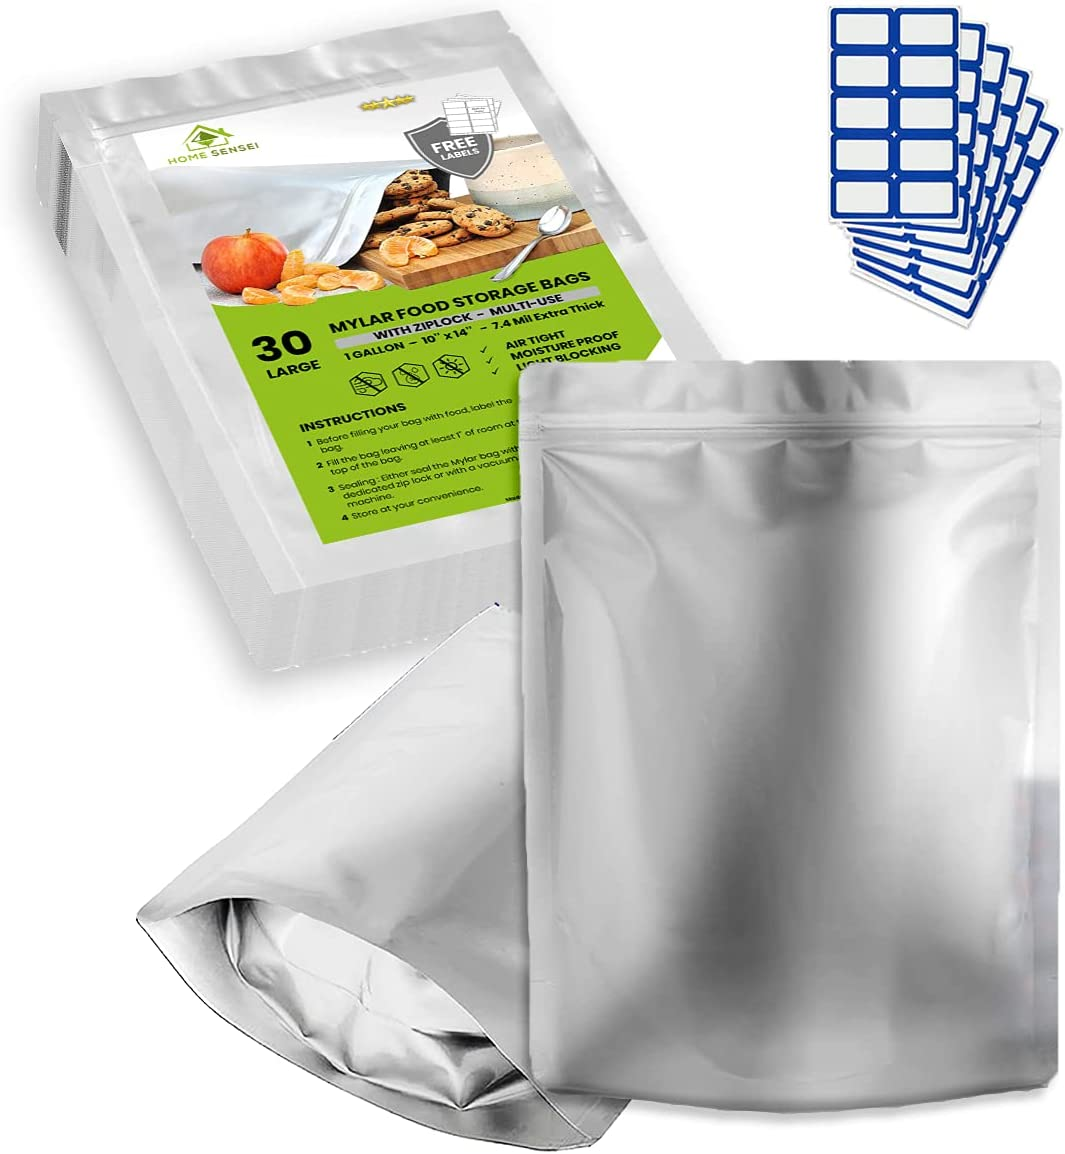 """30 x 1 Gallon Mylar Bags for Food Storage - Resealable Mylar Bags - 10""""x15"""" Mylar Ziplock Bags Extra Thick 7.4 Mil - Large Mylar Bag for Long Term Food Storage - 30 Labels - Sealable bags for food"""